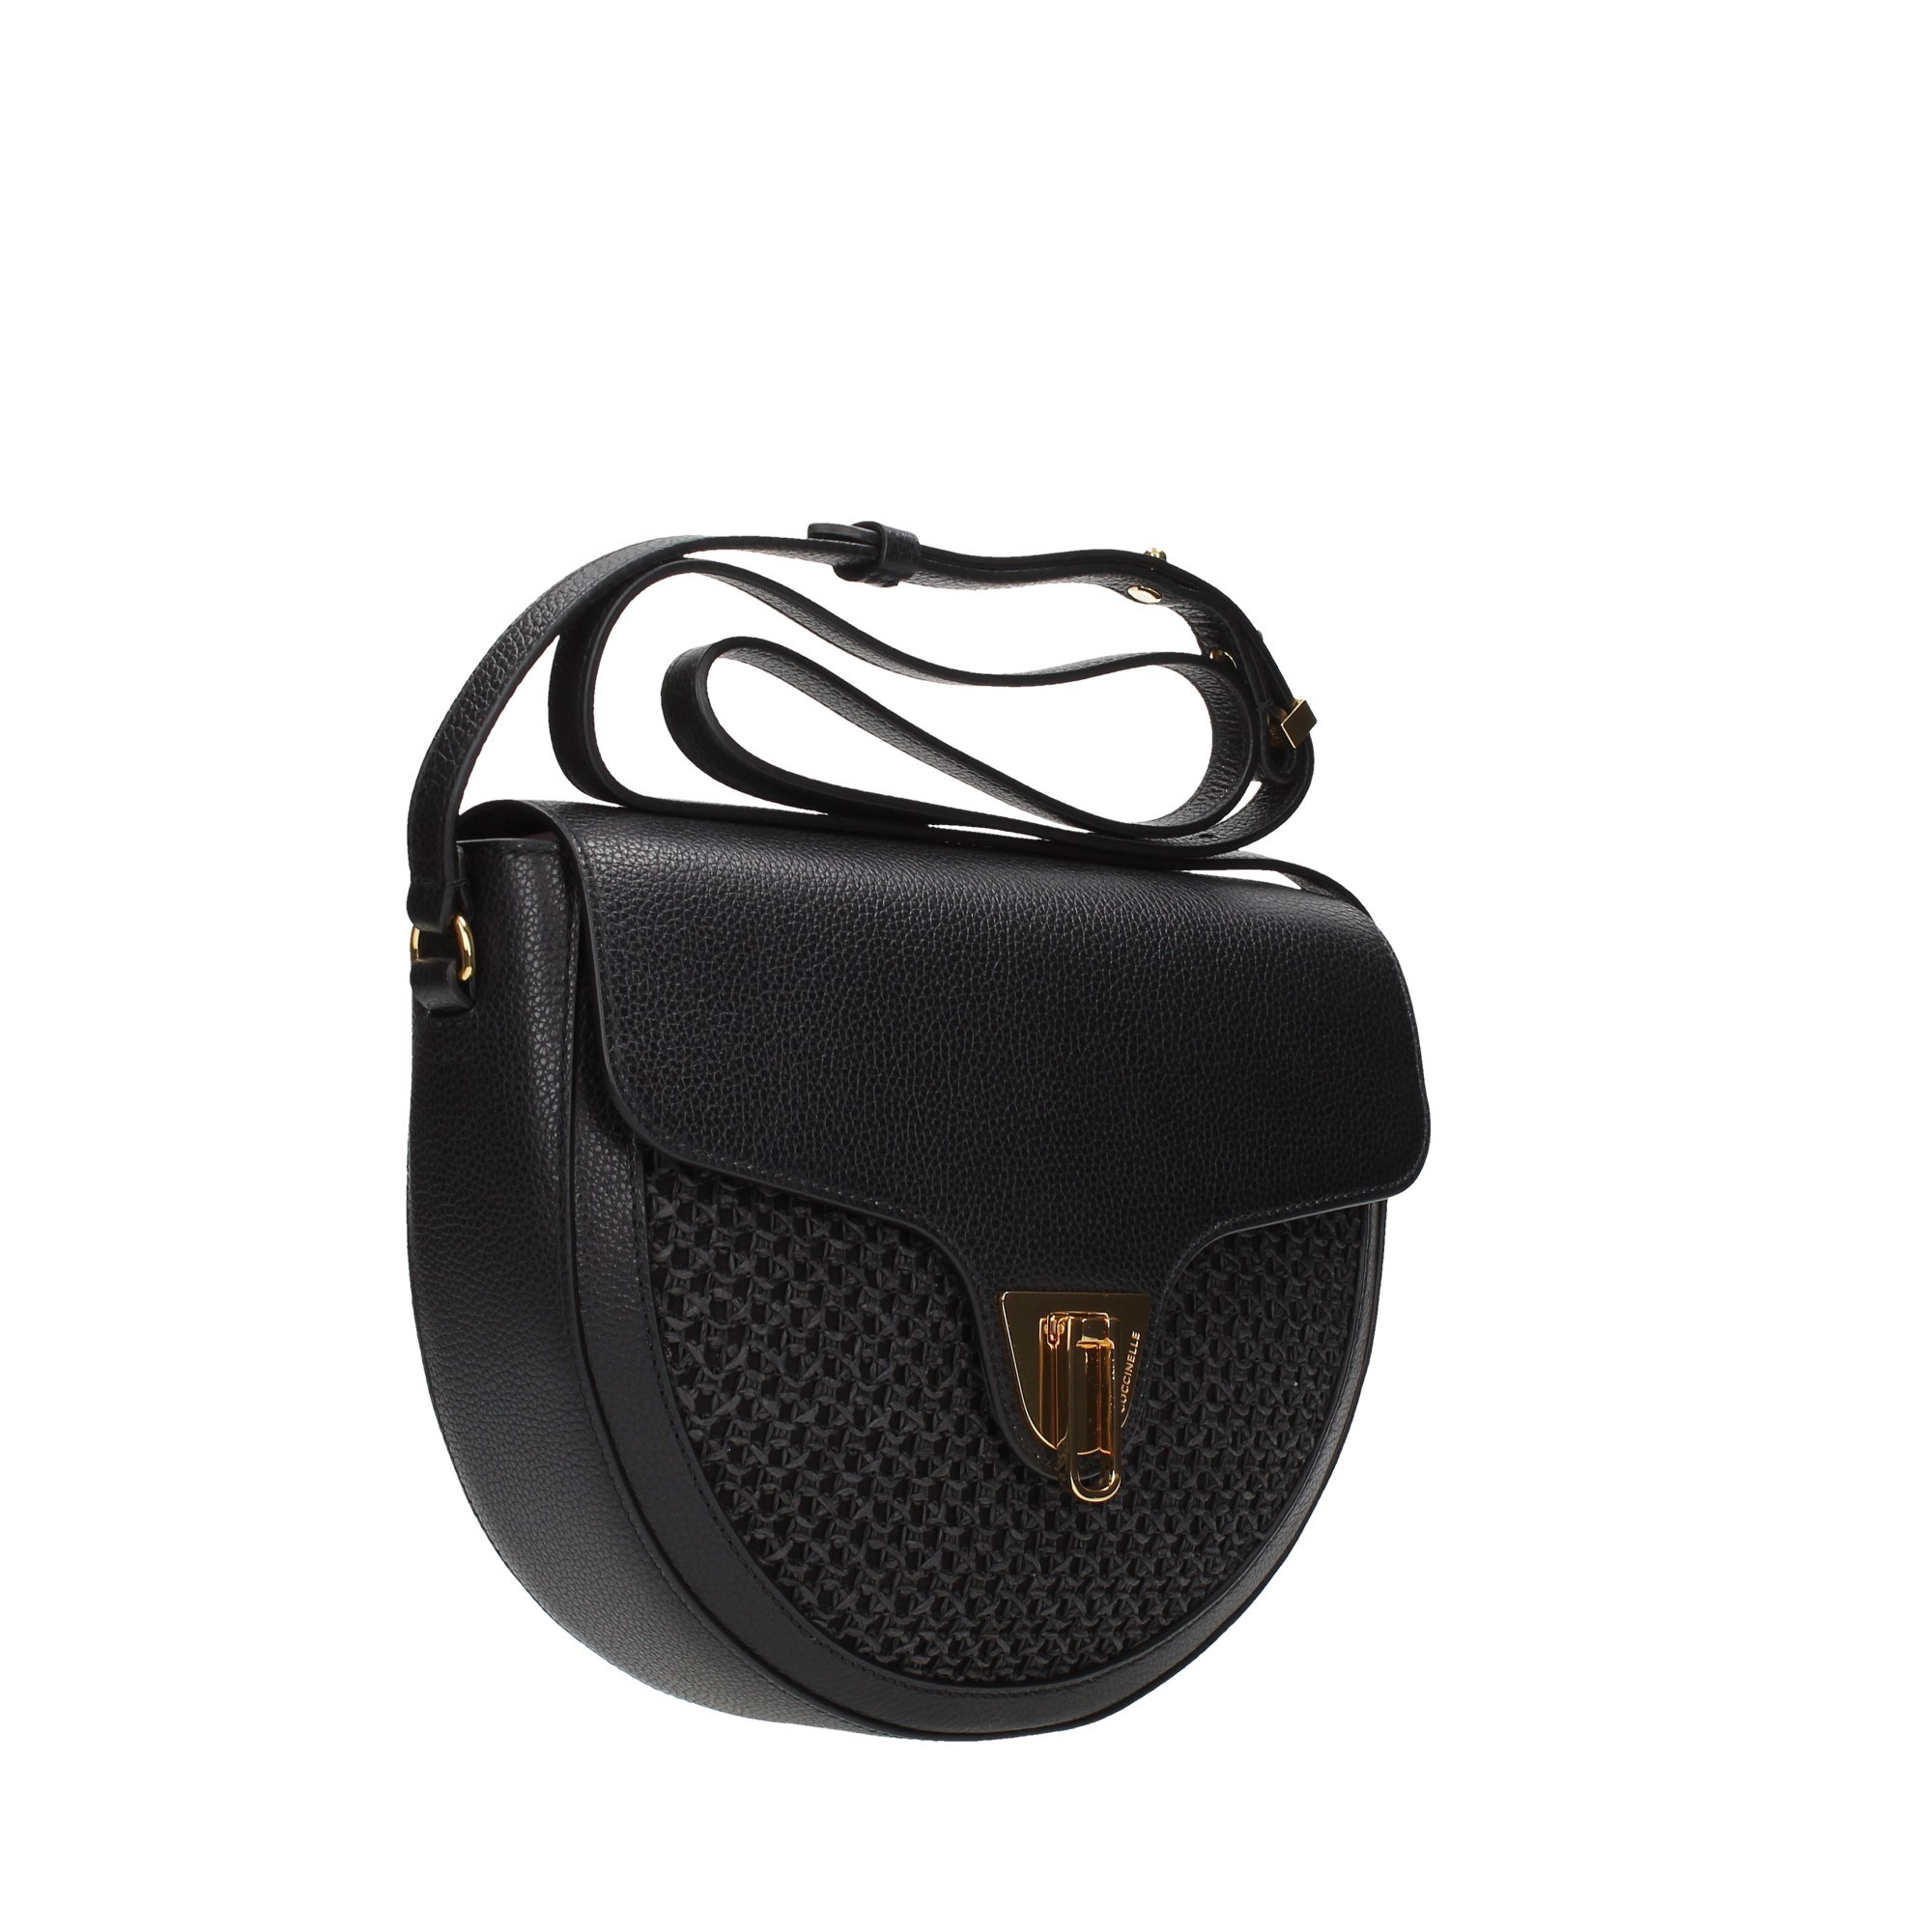 Coccinelle Accessories Women Shoulder Bags Black HF9 150101